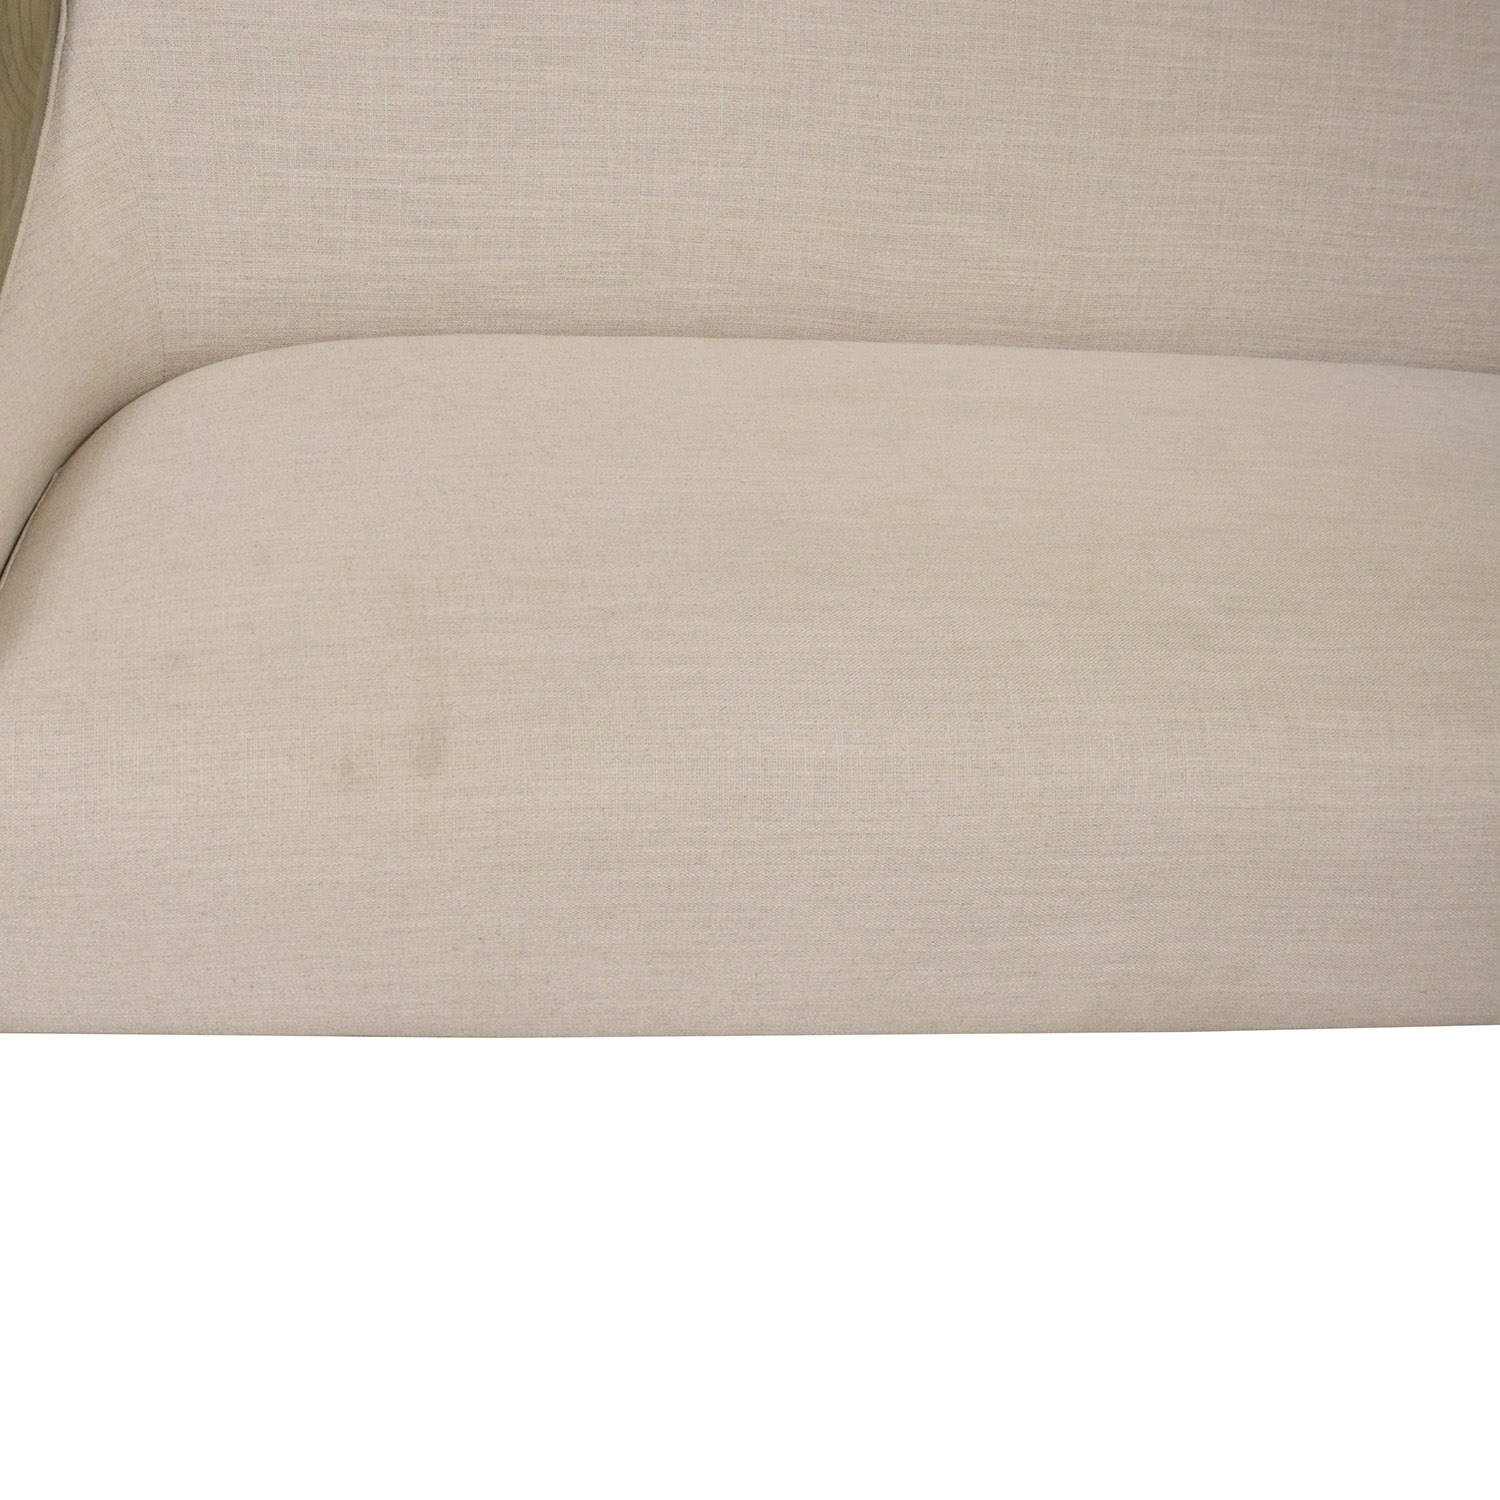 Crate & Barrel Crate & Barrel Elegant Upholstered Loveseat used